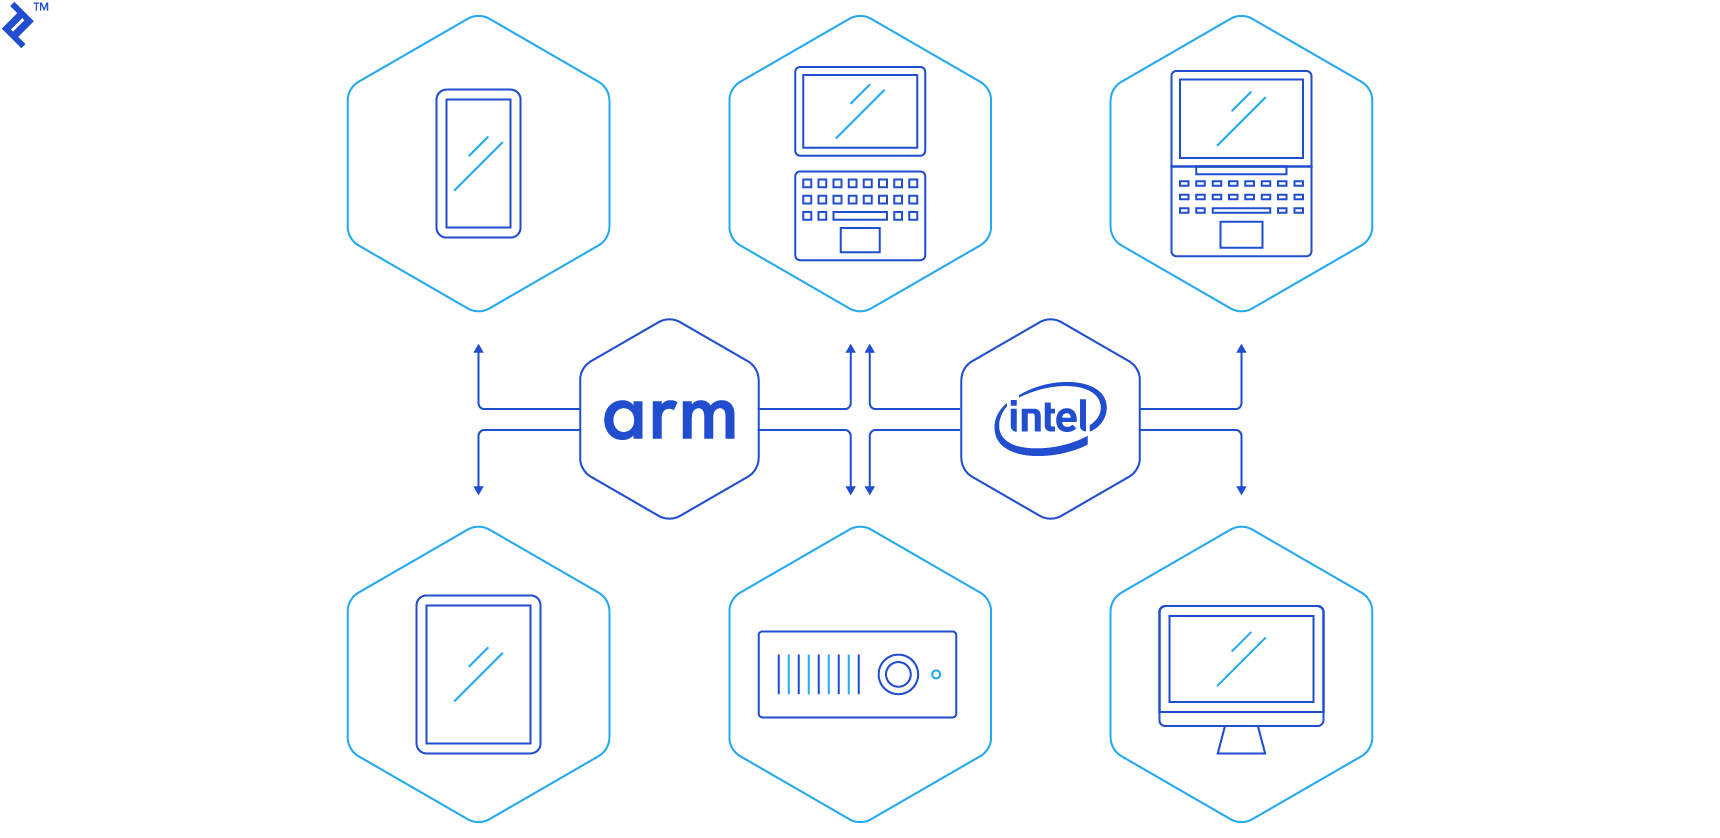 ARM processors dominate the mobile landscape, and they're making inroads into other product categories. Servers are a good place to start.